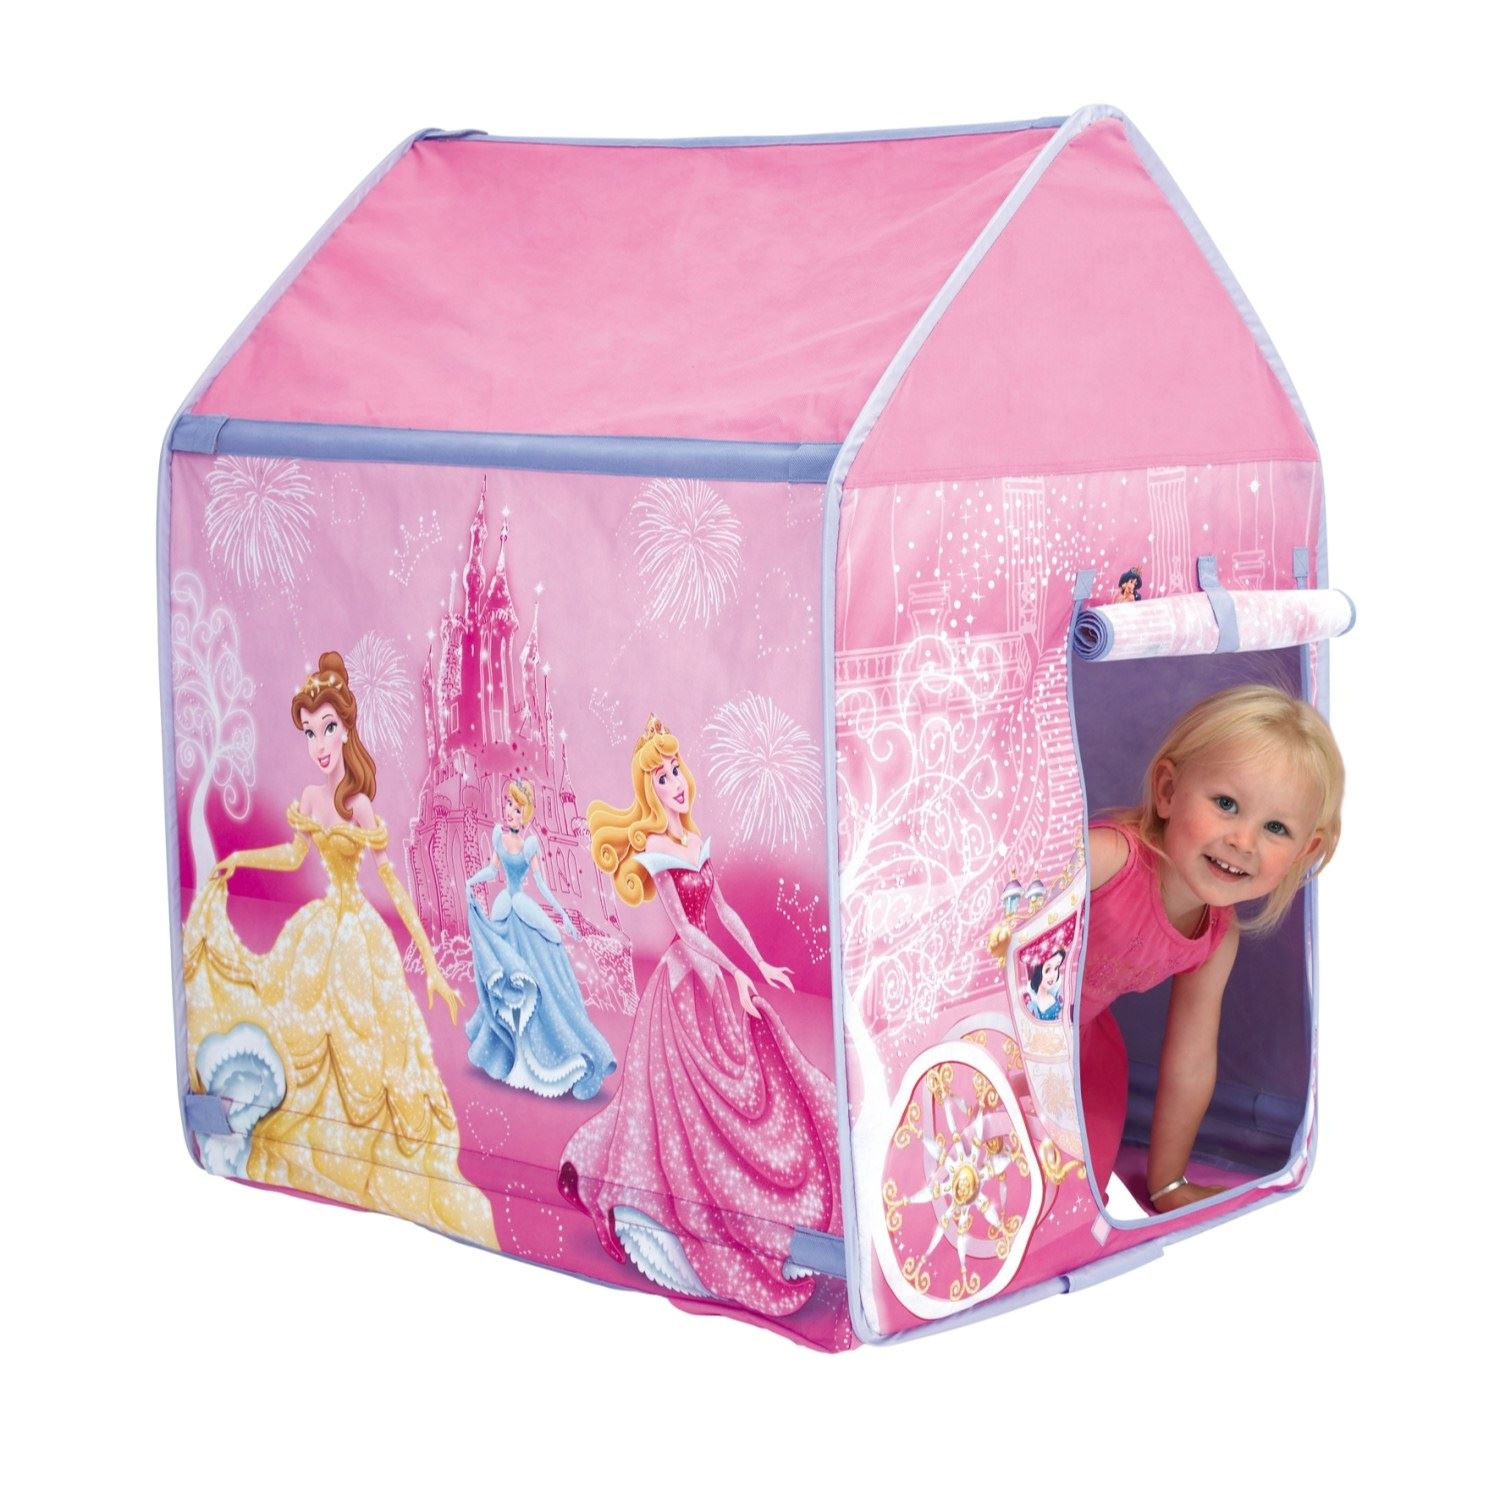 enfants disney and character pop up tente de jeu maisonnette ebay. Black Bedroom Furniture Sets. Home Design Ideas